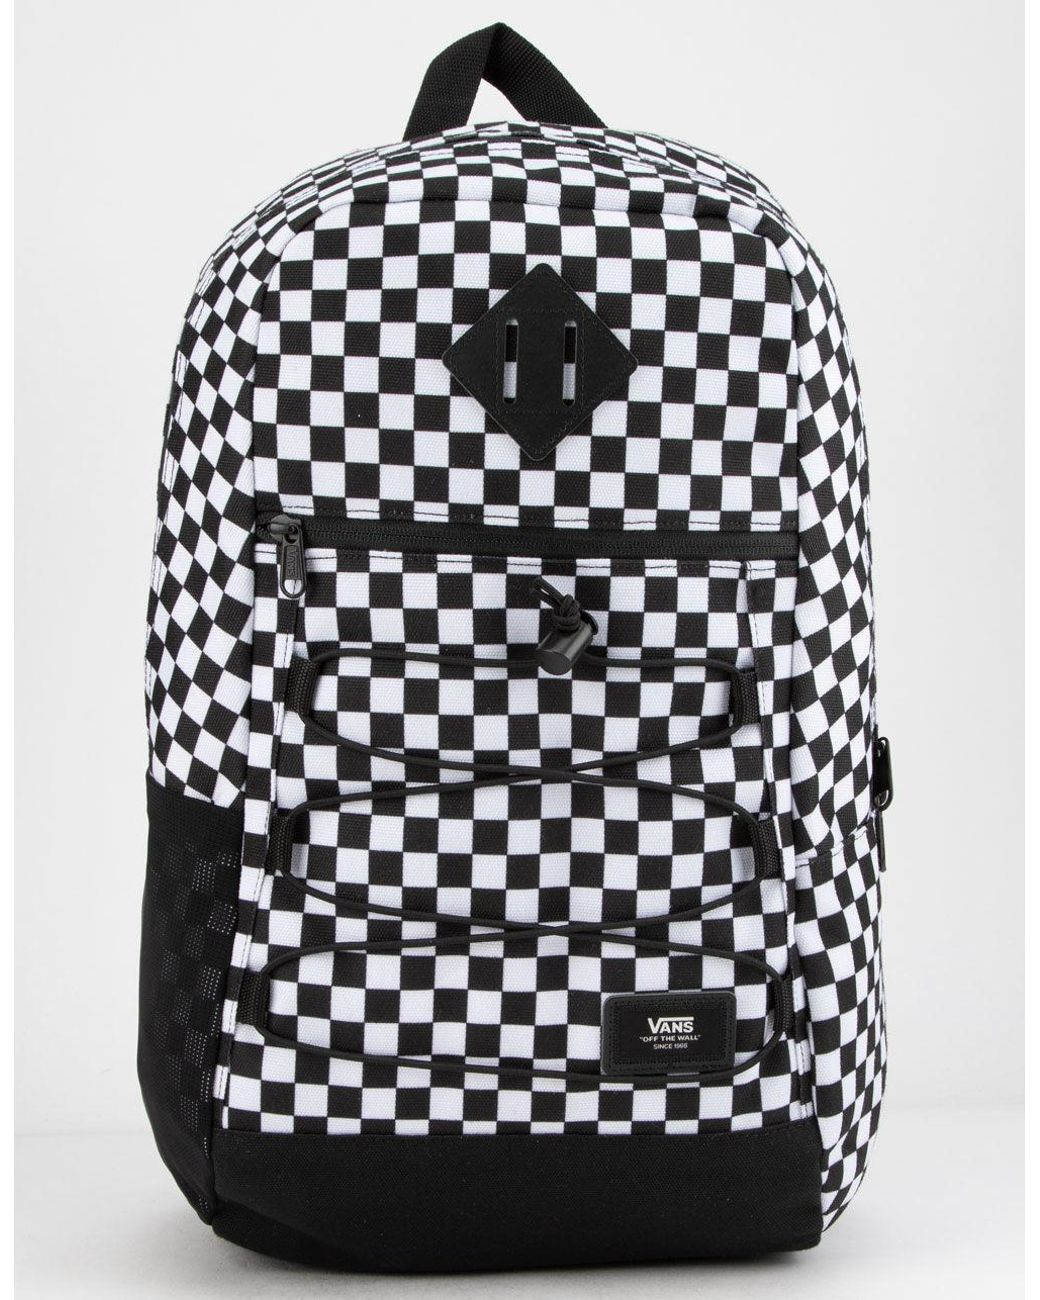 0a4a11b974c Black And White Checkered Backpack | Building Materials Bargain Center